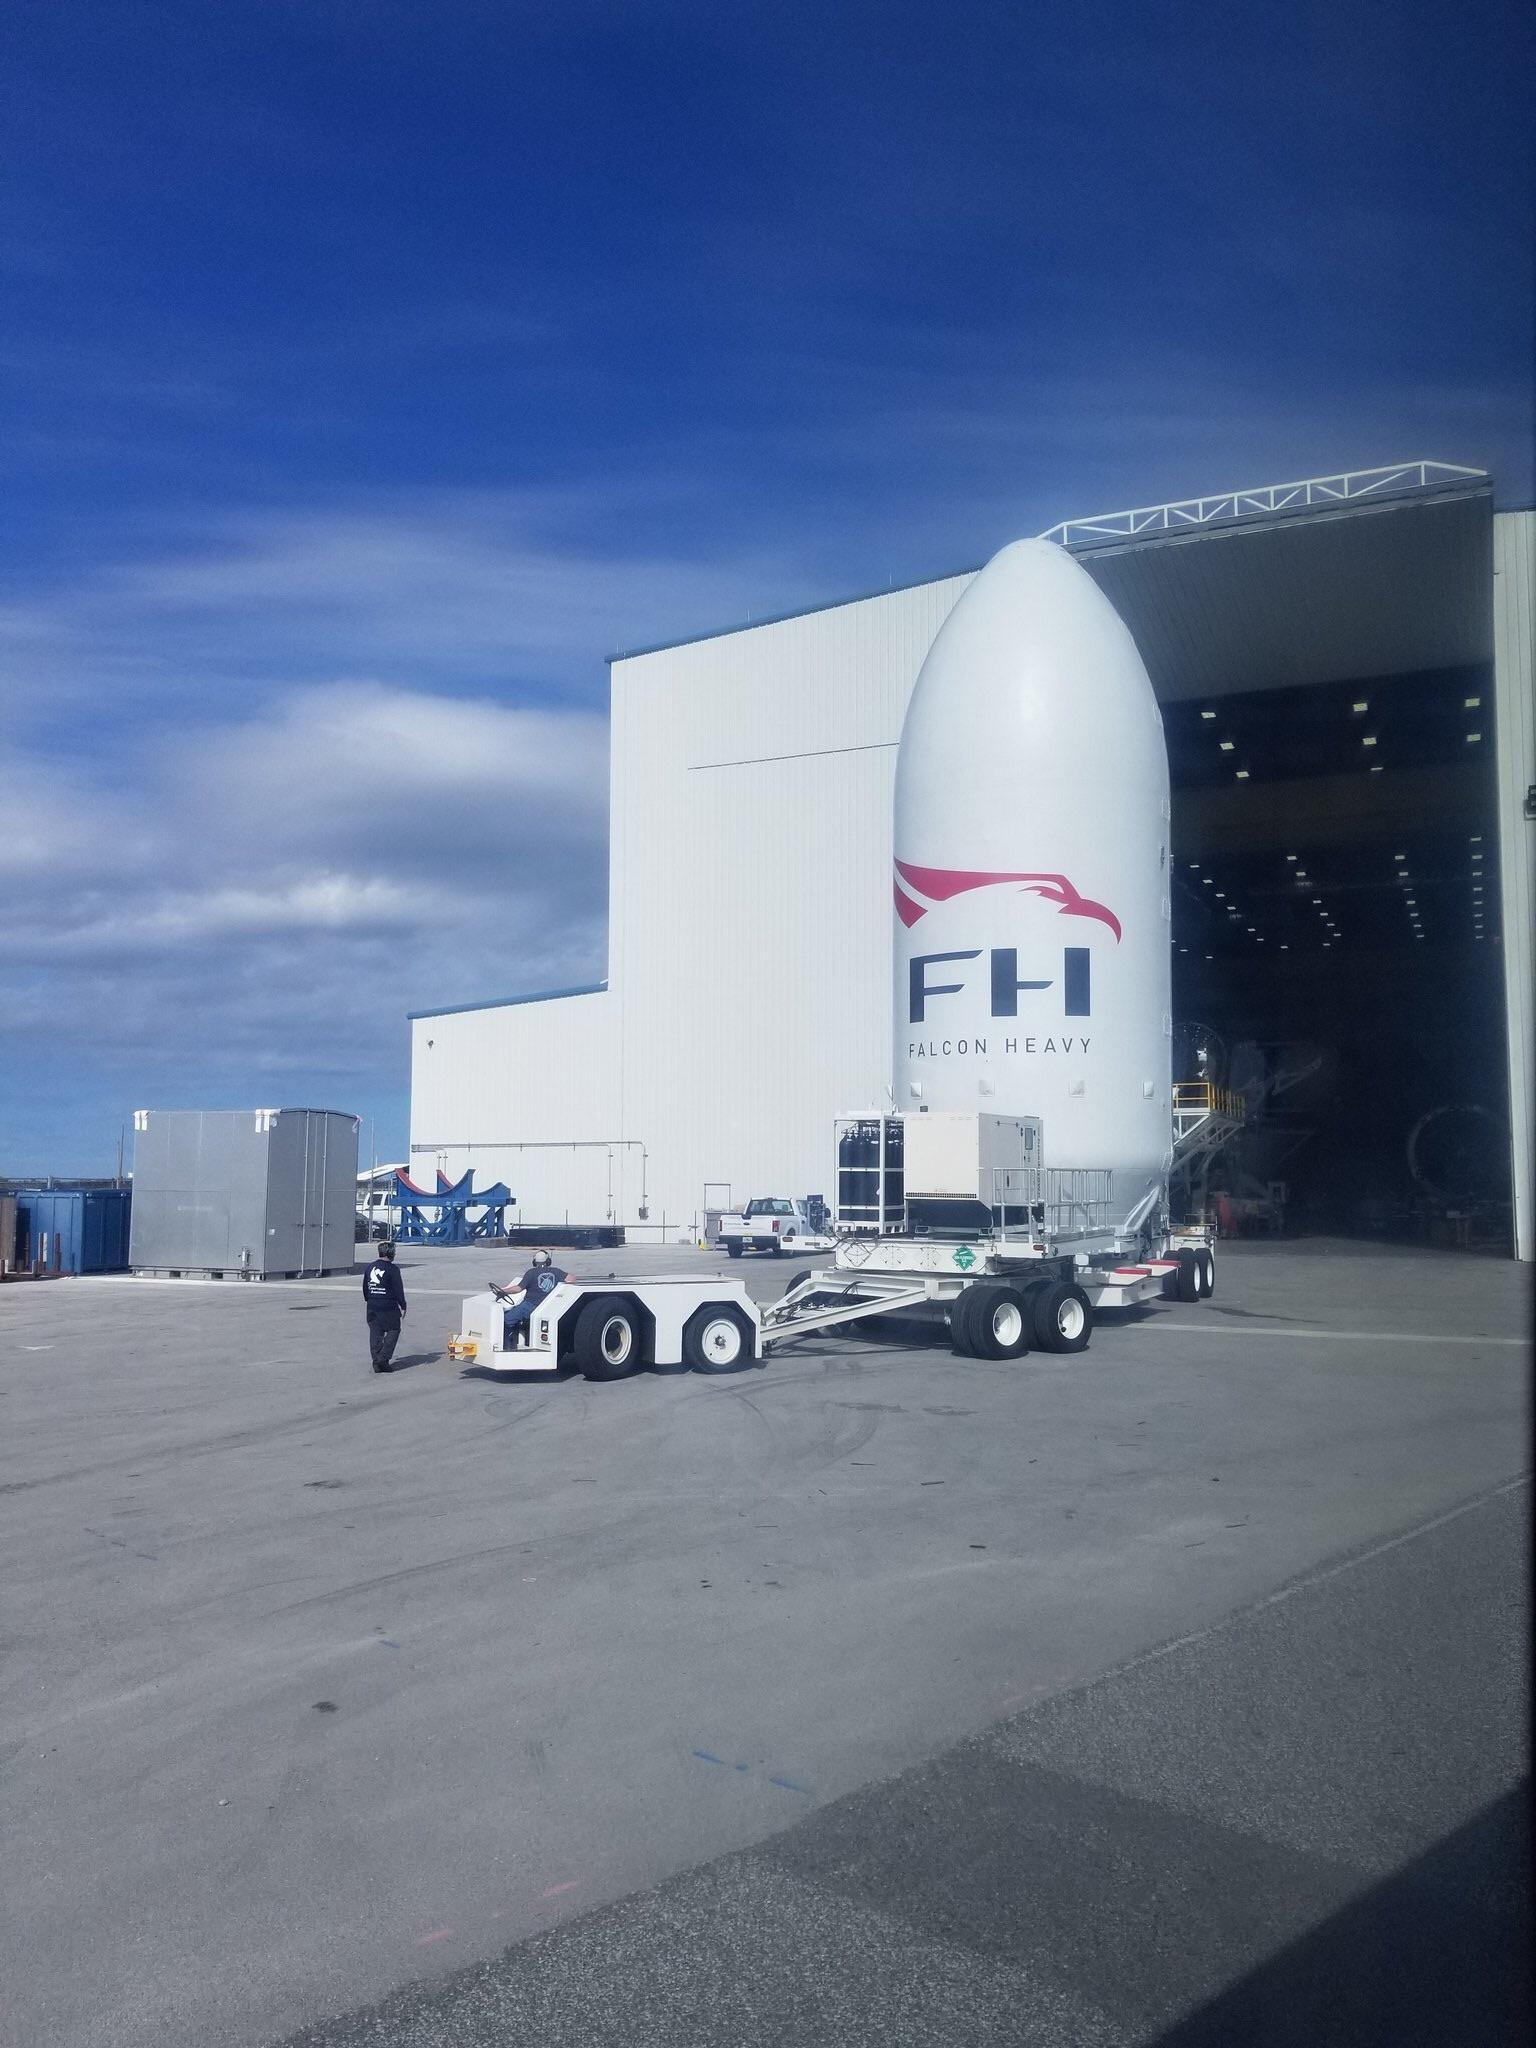 FH fairing at 39A (St-Jed-of-Calumet)